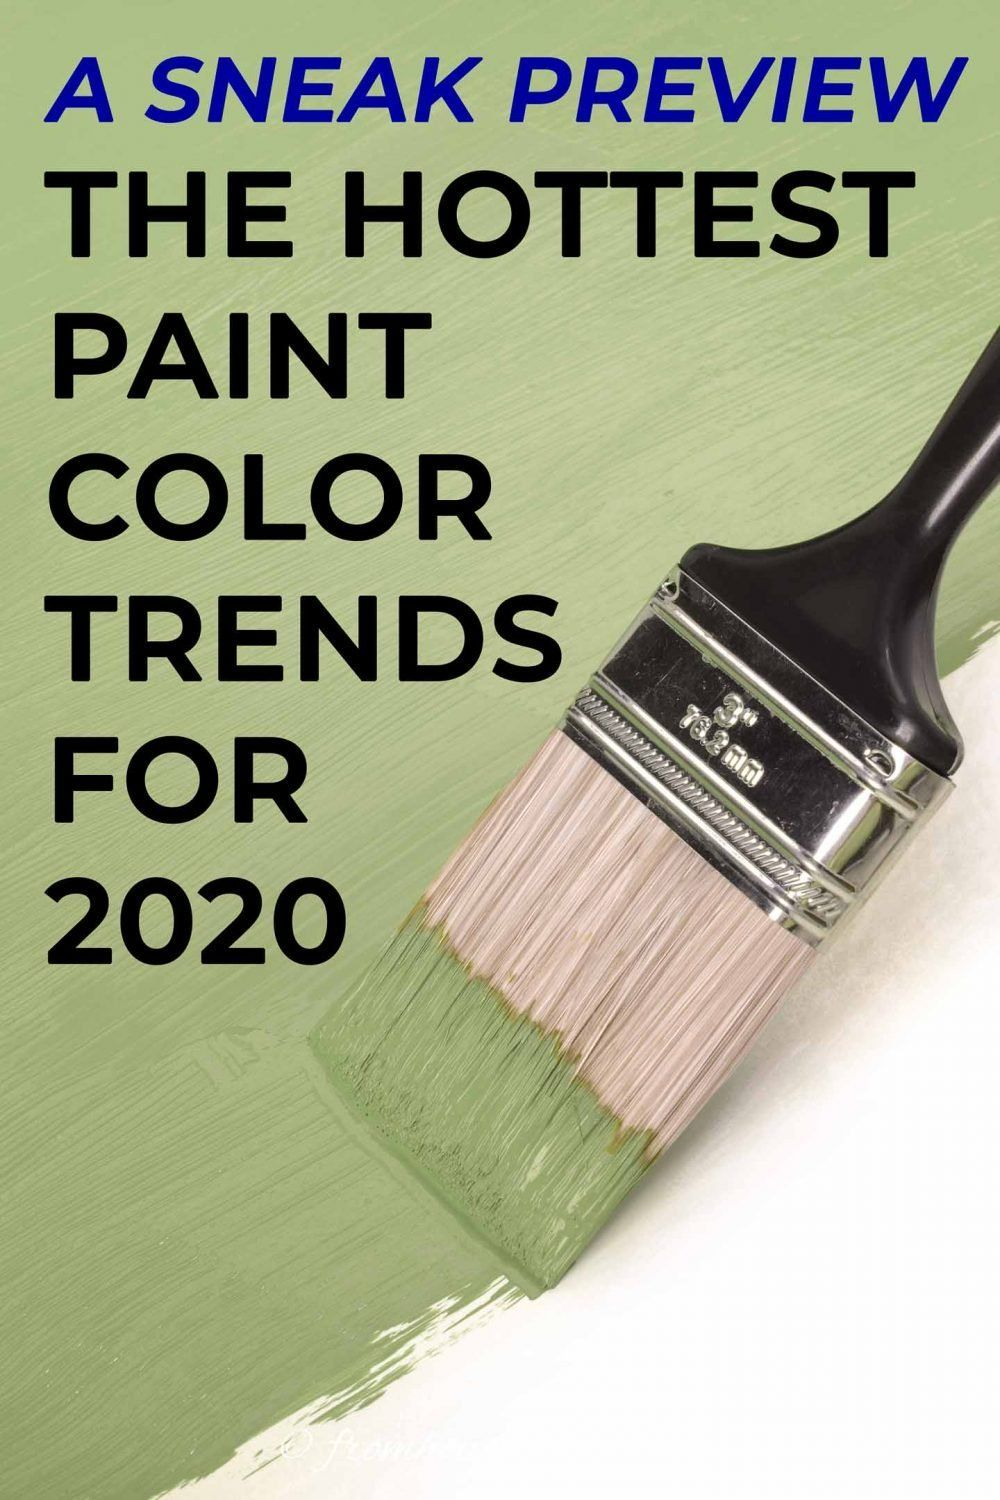 the hottest 2020 paint color trends in 2020 with images on current popular interior paint colors id=60812